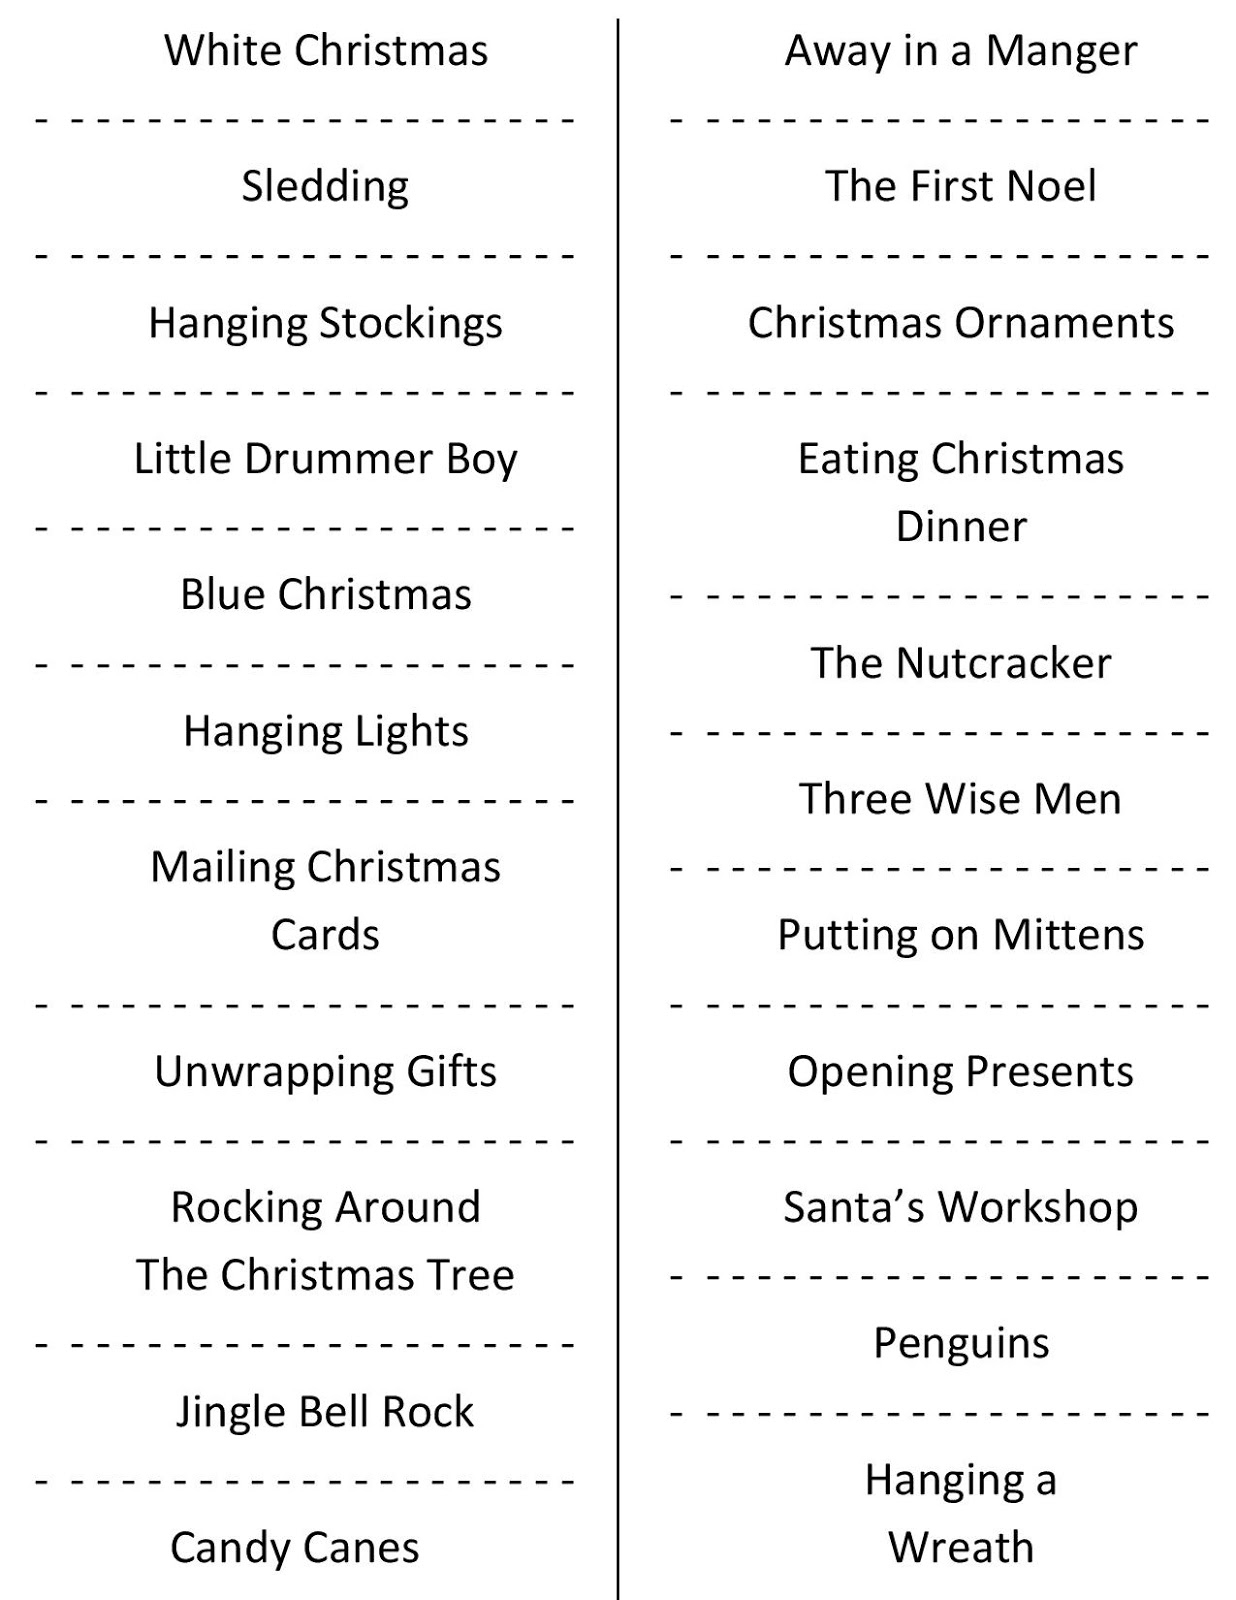 Christmas Charades (Free Printable Party Game) - Free Printable Christmas Charades Cards